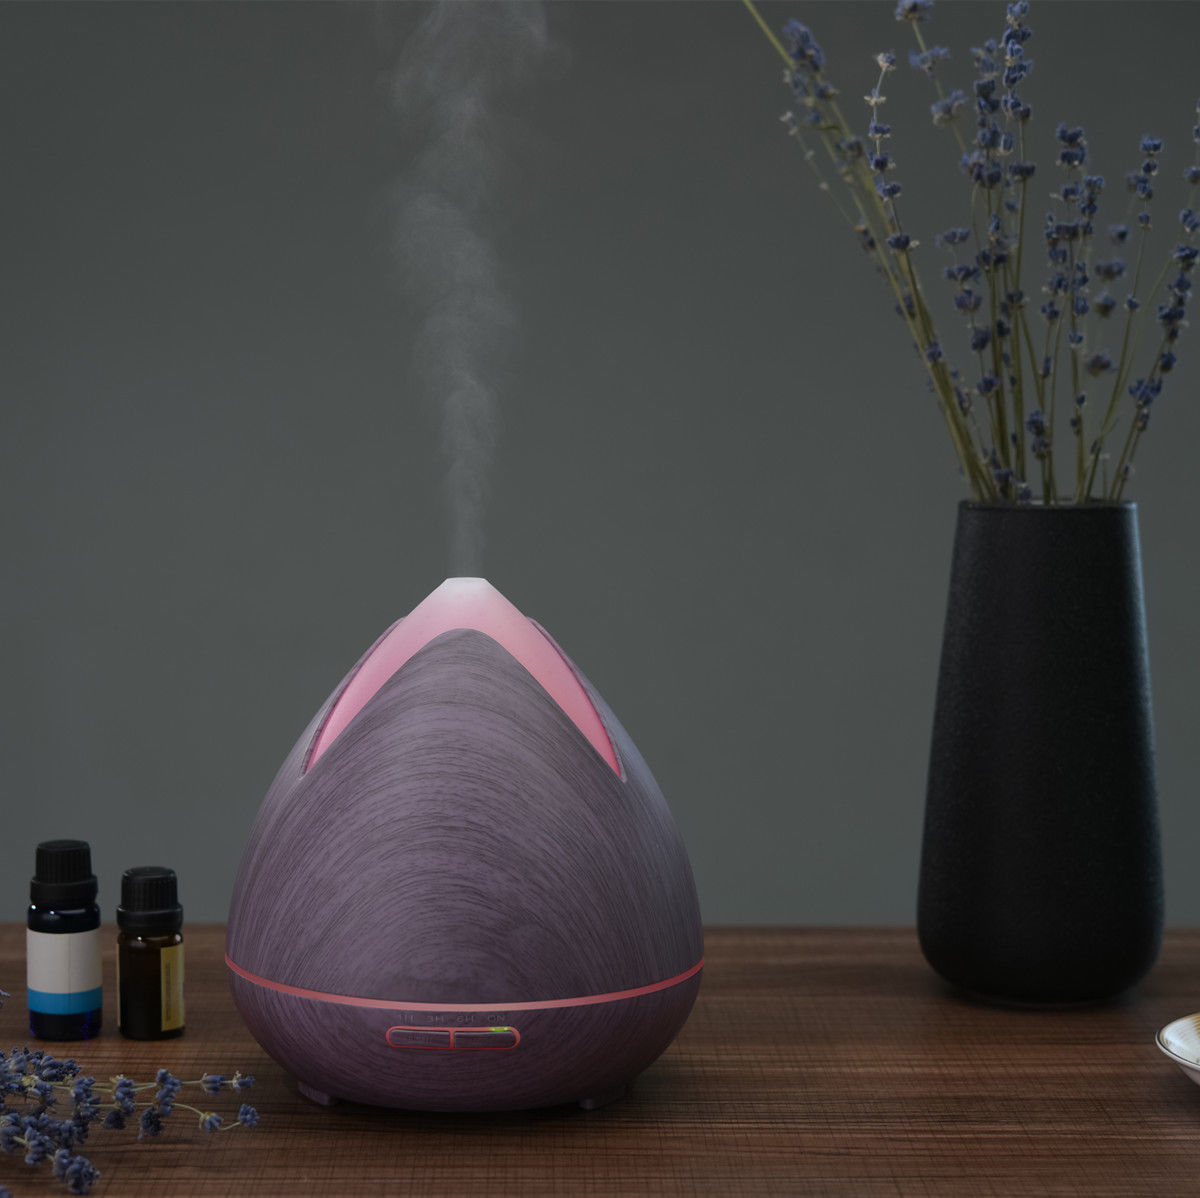 NEW-Essential-Oils-Ultrasonic-Aromatherapy-Diffuser-Air-Humidifier-Purify-400ML